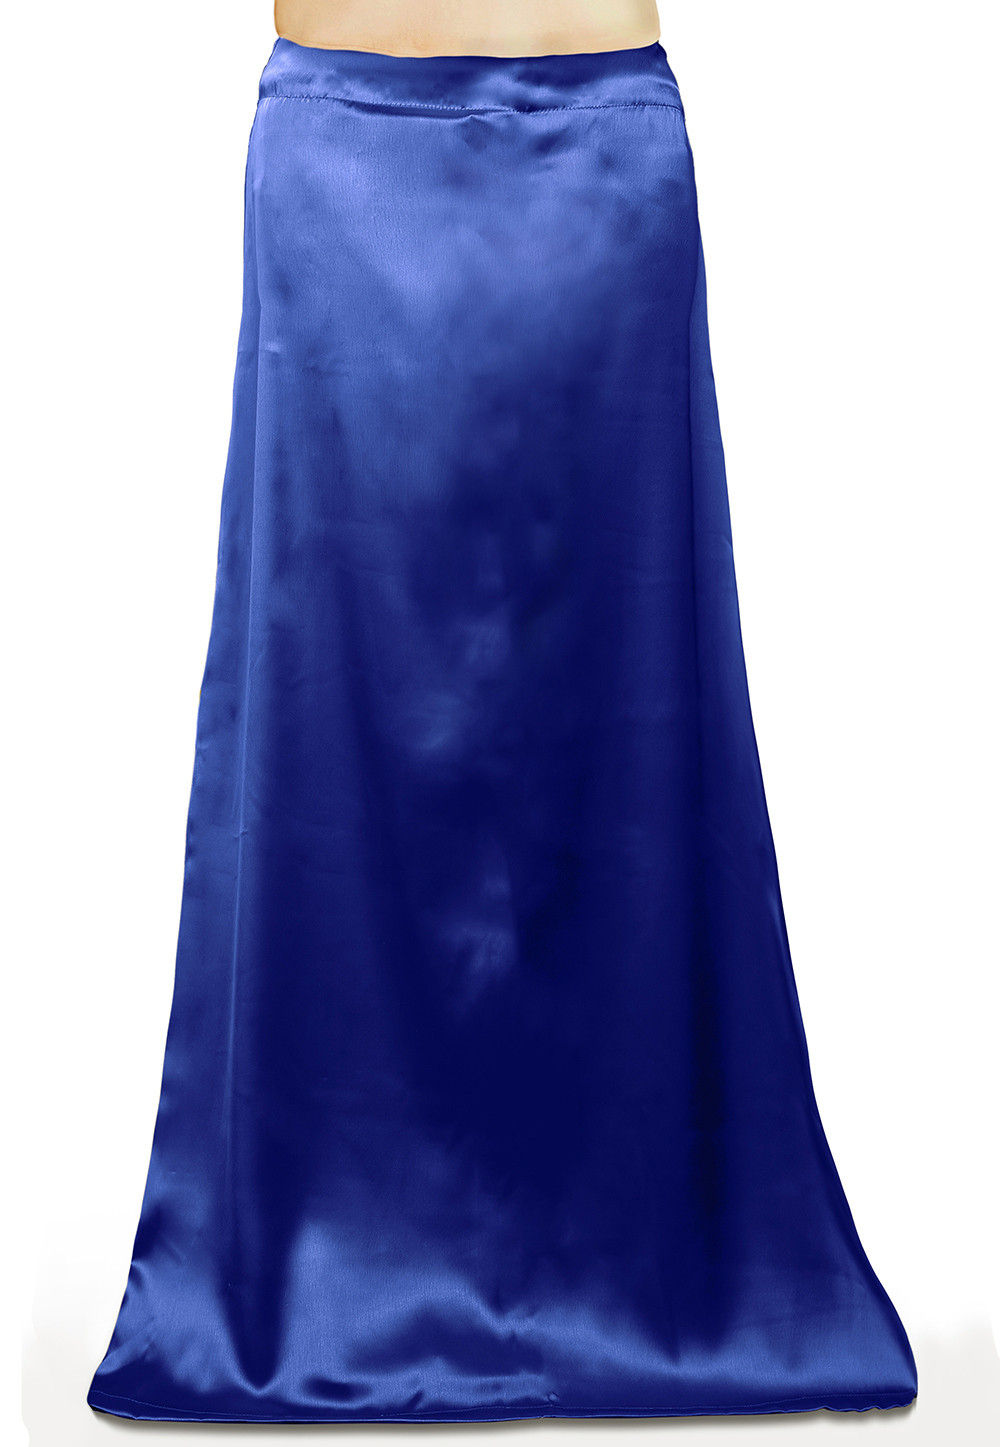 Satin Petticoat in Royal Blue